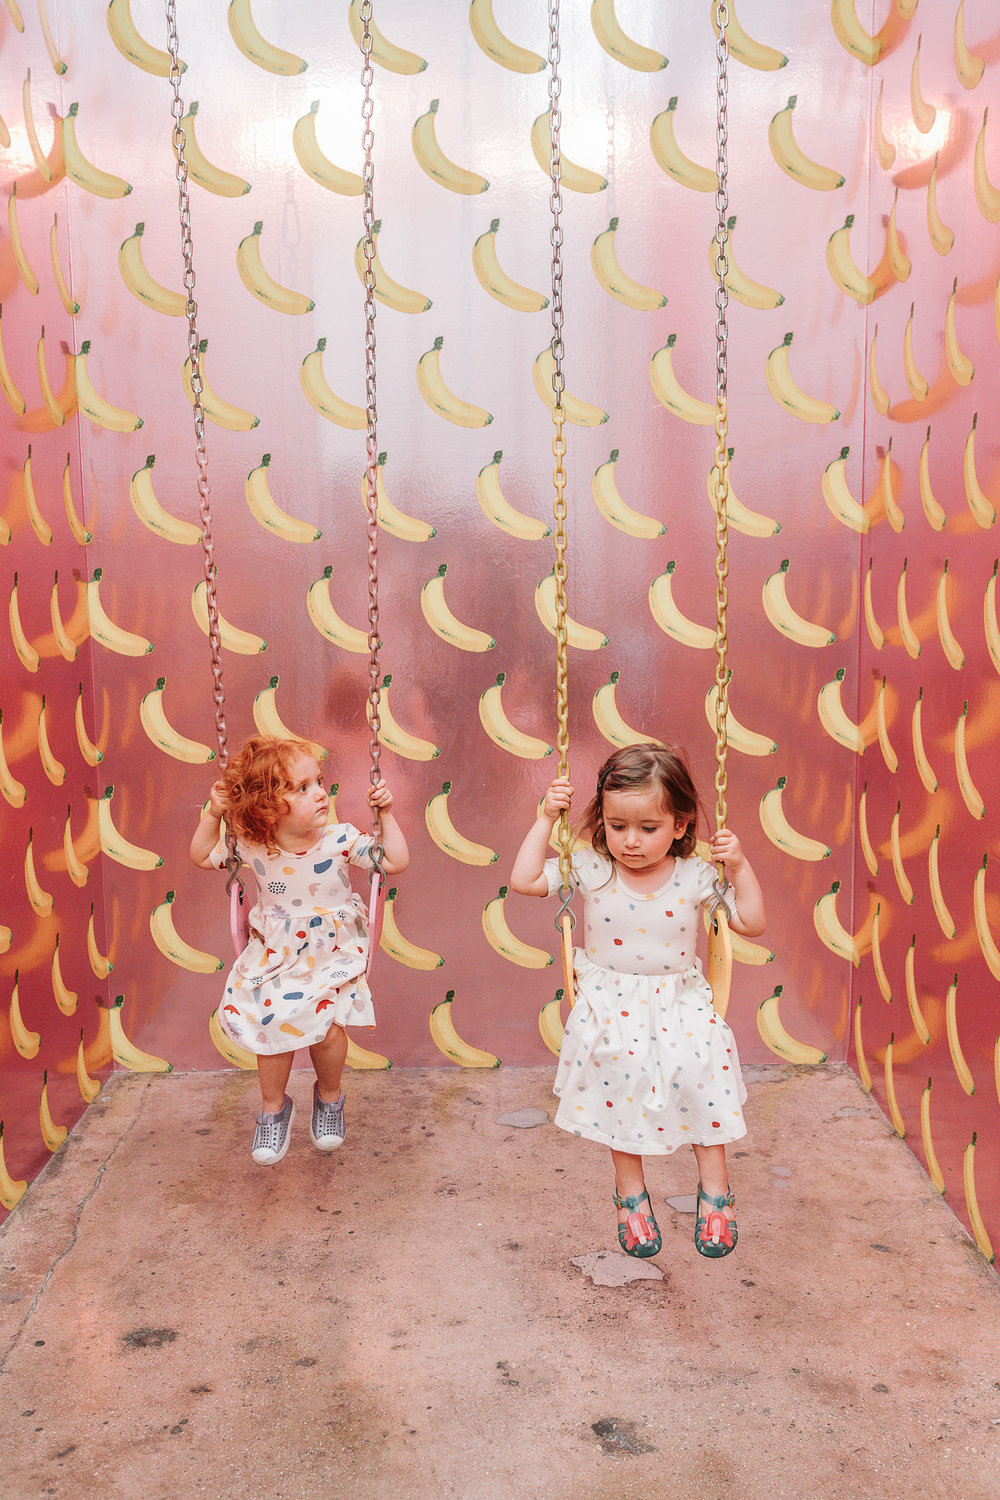 Los Angeles Museum of Ice Cream Munopia Portraits (39 of 78).jpg